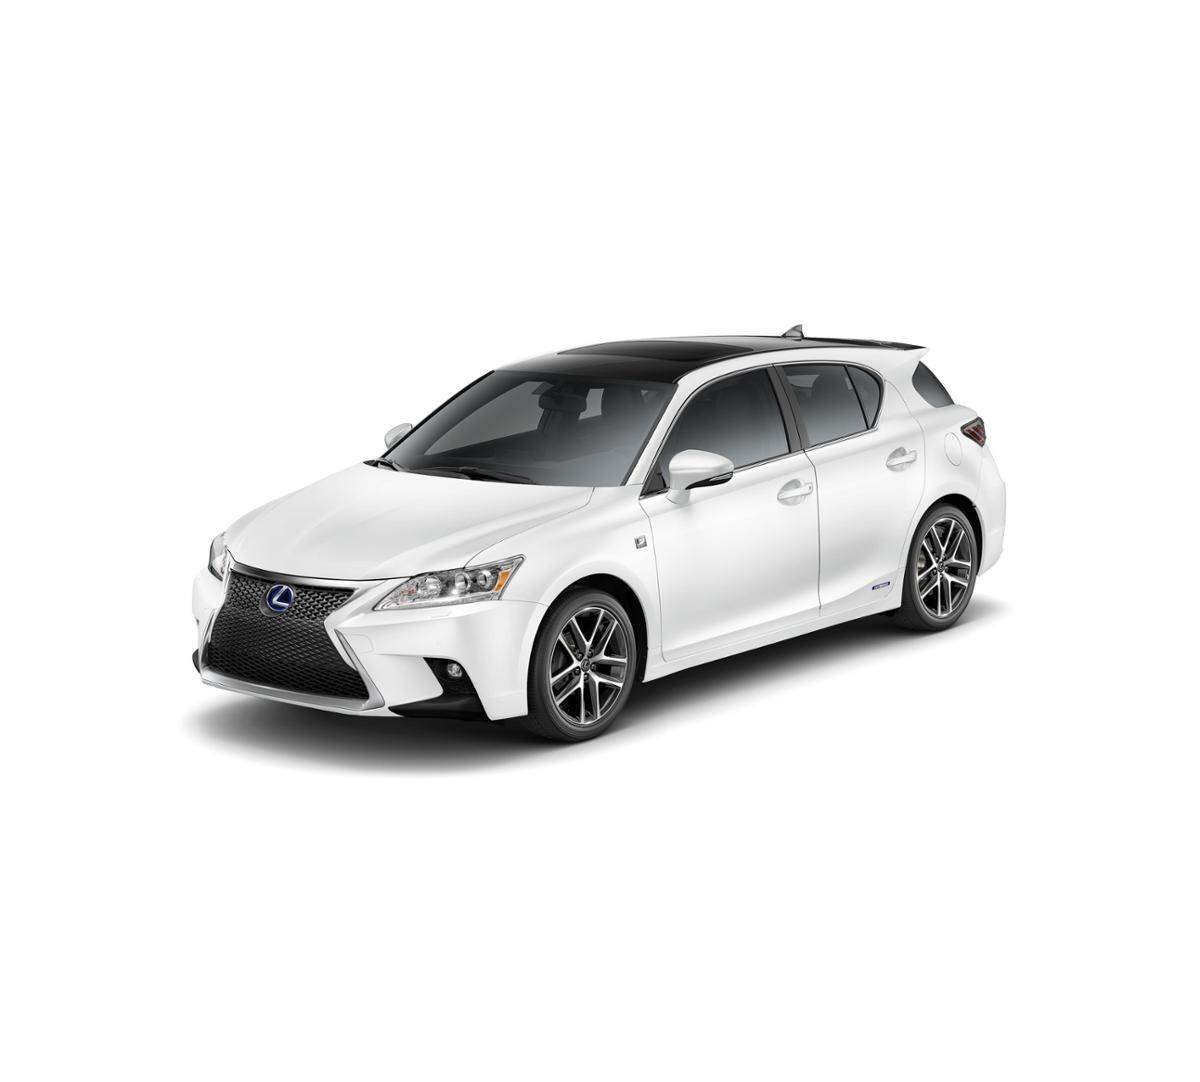 2017 Lexus CT 200h for sale in Roseville